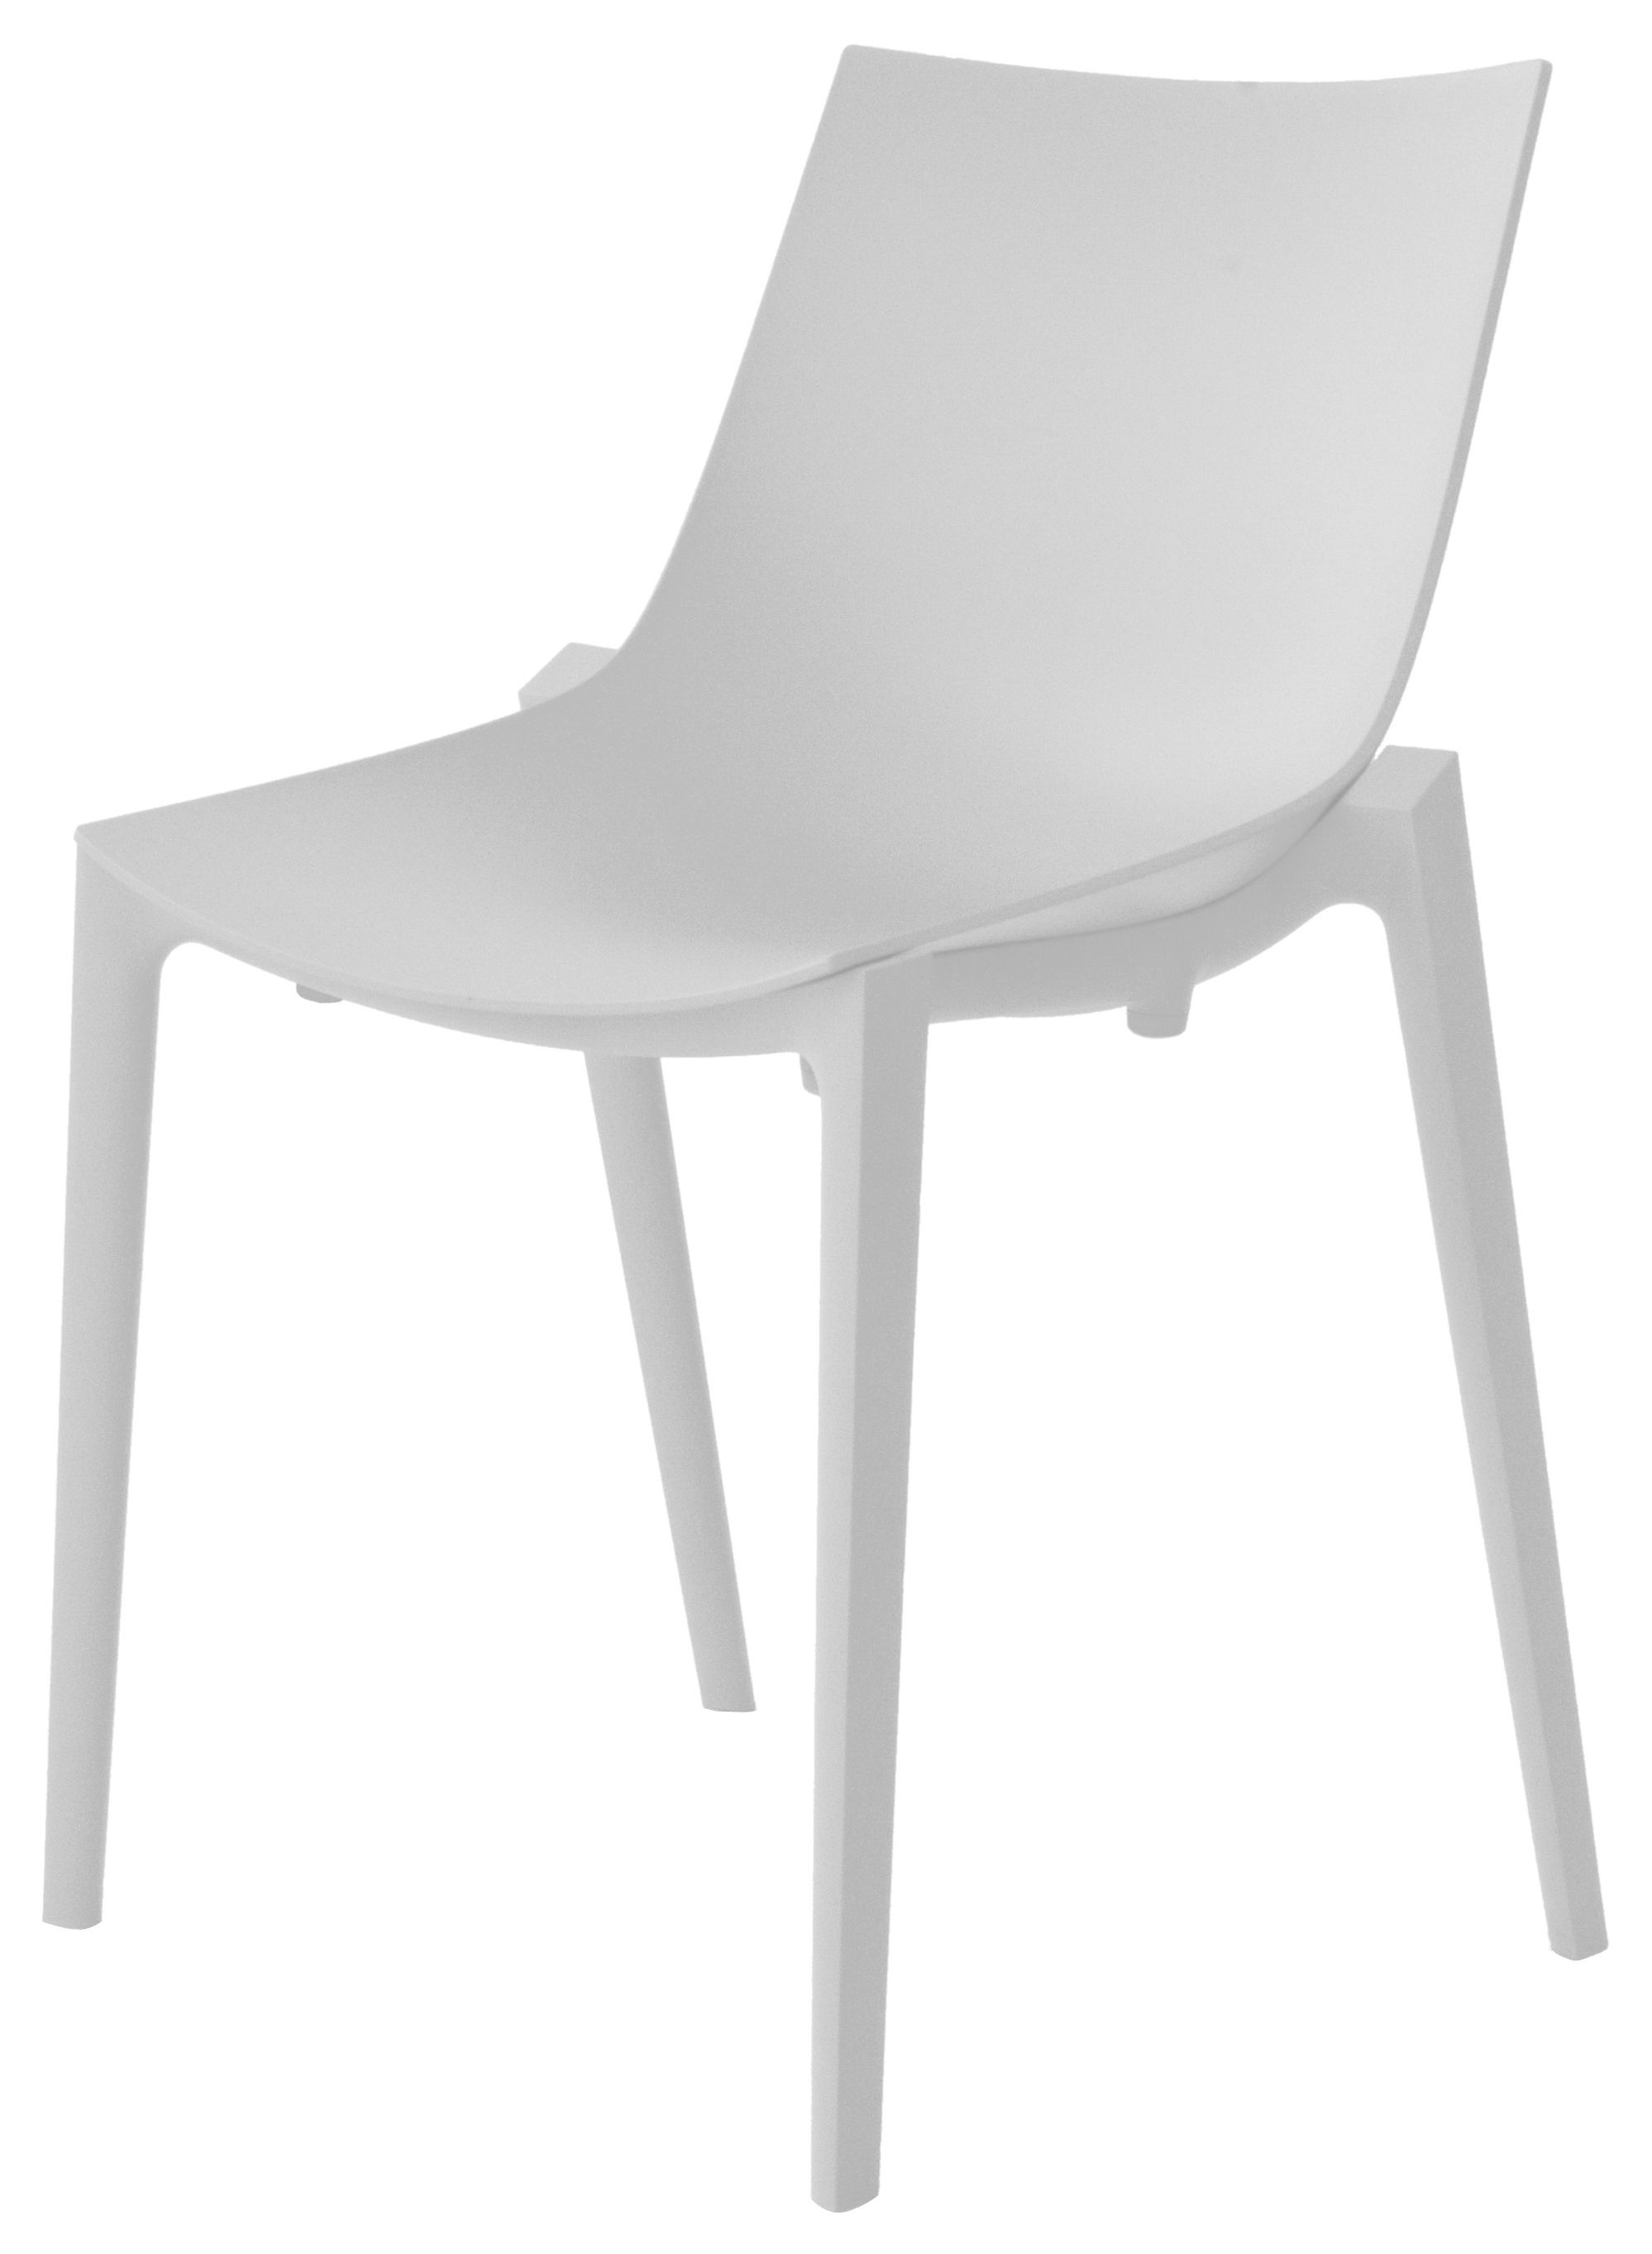 Furniture - Zartan Basic Stacking chair - Polypropylene by Magis - Light grey - Polypropylene with glass fibre added